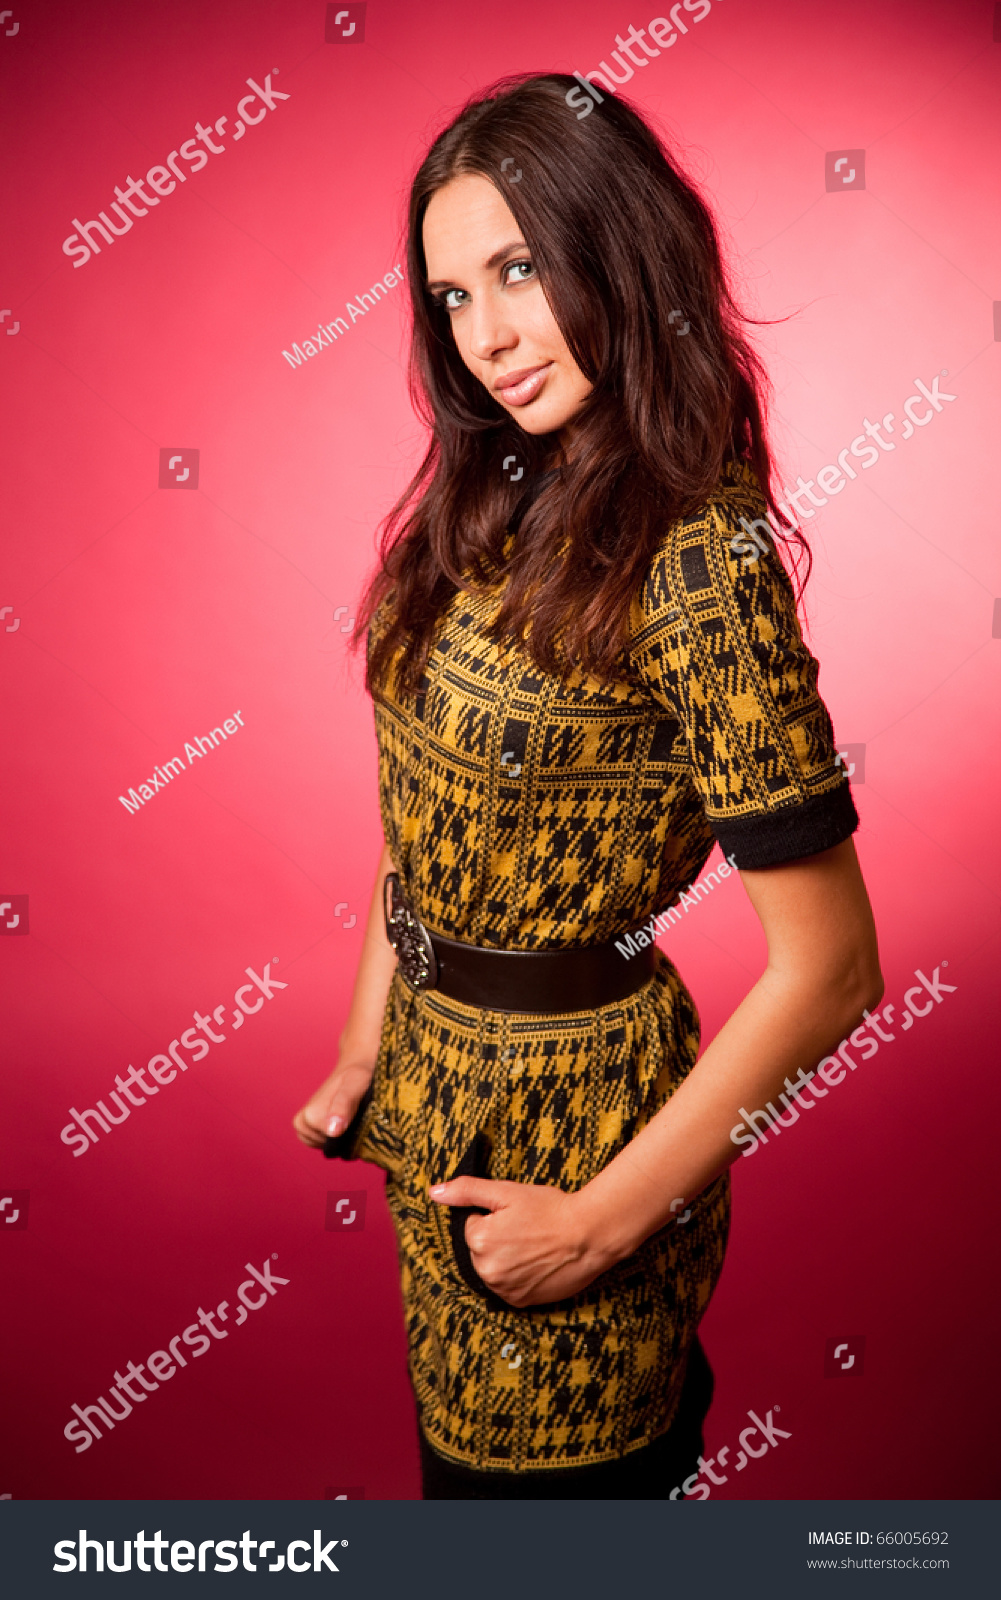 Very Shy Girl Stock Photo 66005692 : Shutterstock